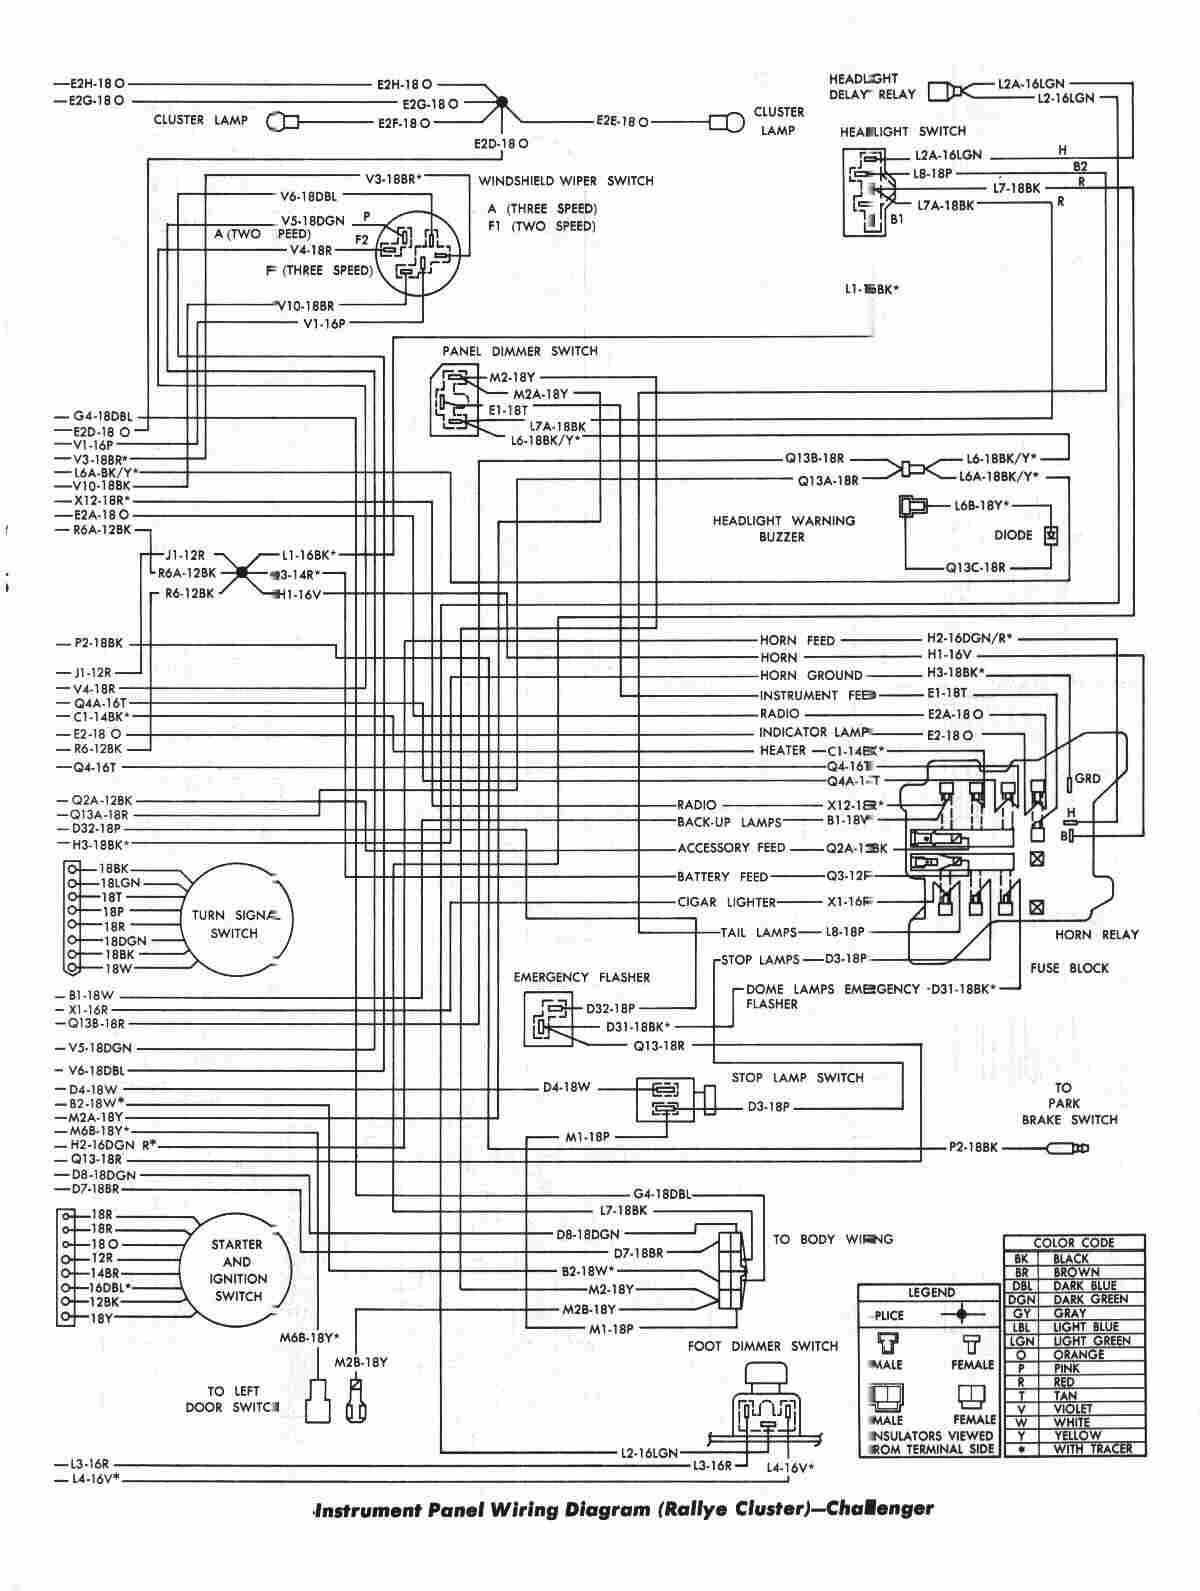 2012 Dodge Charger Tail Light Wiring Diagram Wiring Schematic Diagram Tatuajes Para Hombres Hombres